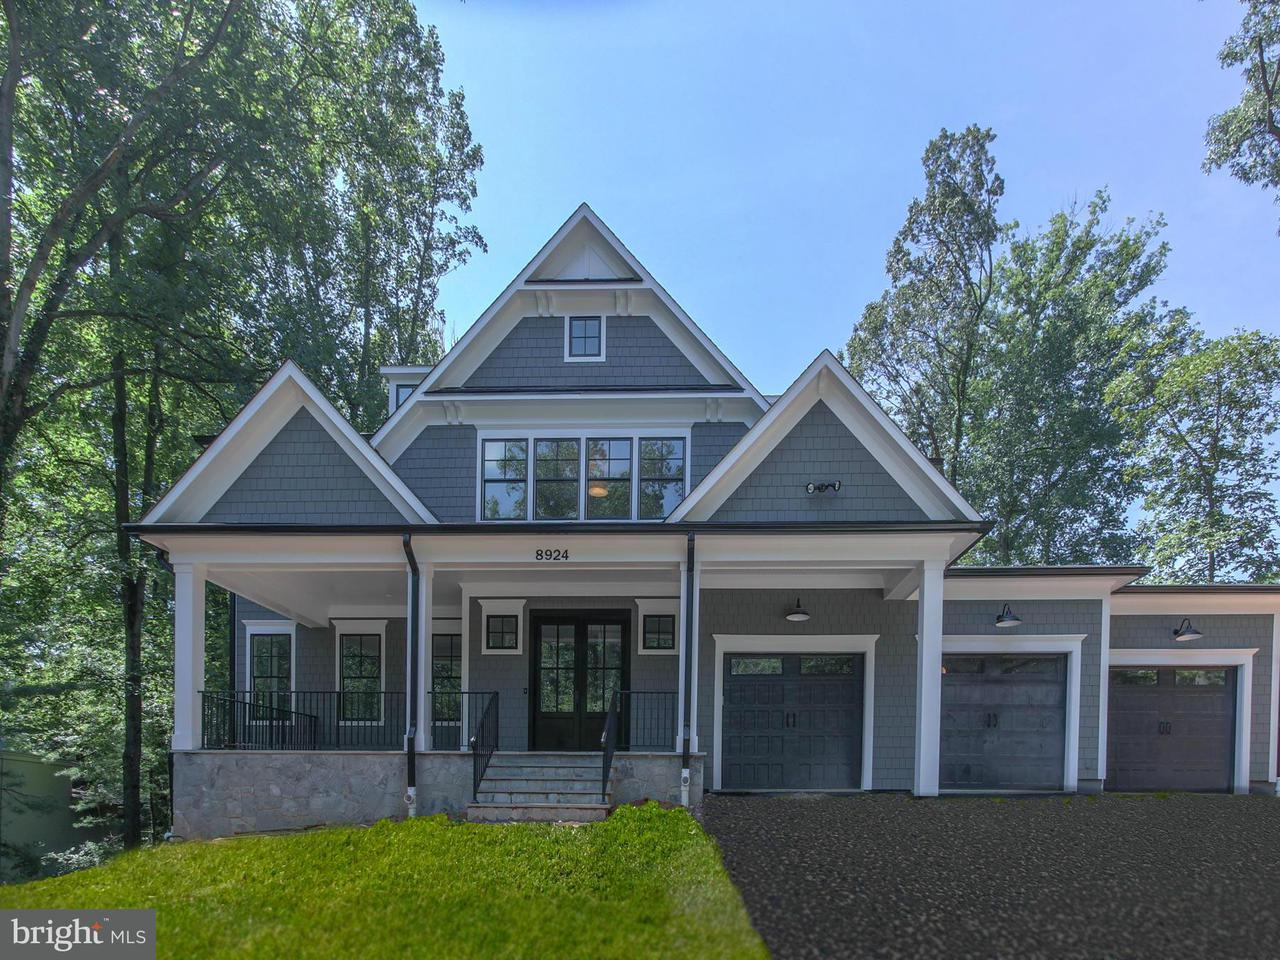 Single Family Home for Sale at 8924 CHARRED OAK Drive 8924 CHARRED OAK Drive Bethesda, Maryland 20817 United States